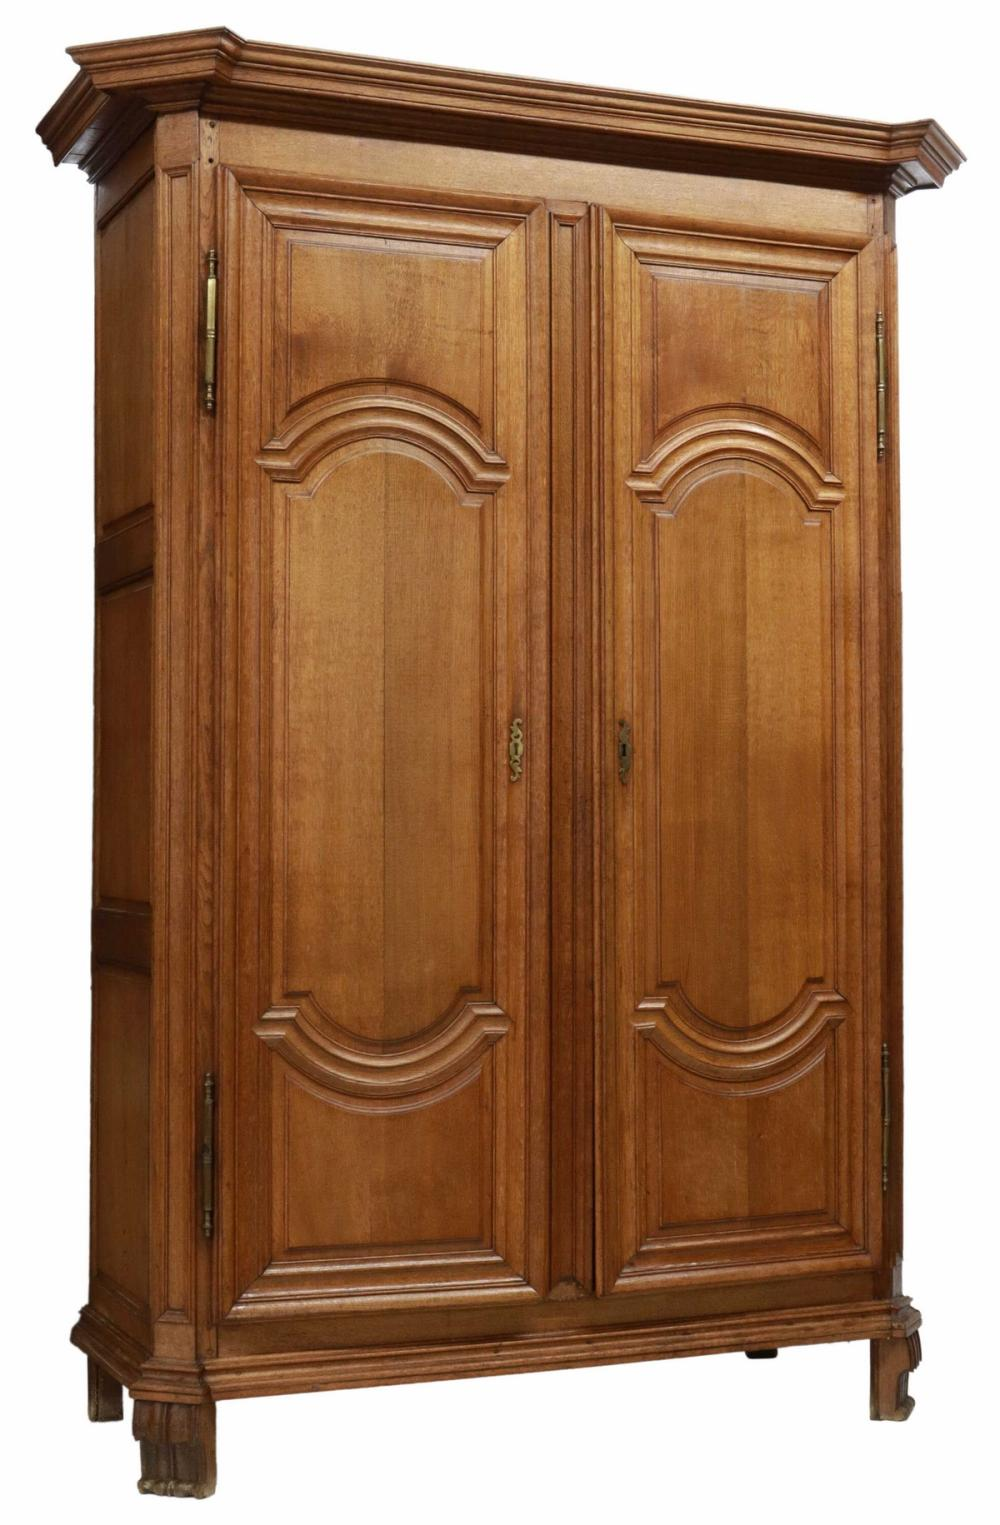 """FRENCH PROVINCIAL OAK ARMOIRE, 19TH C., 101.5""""H"""